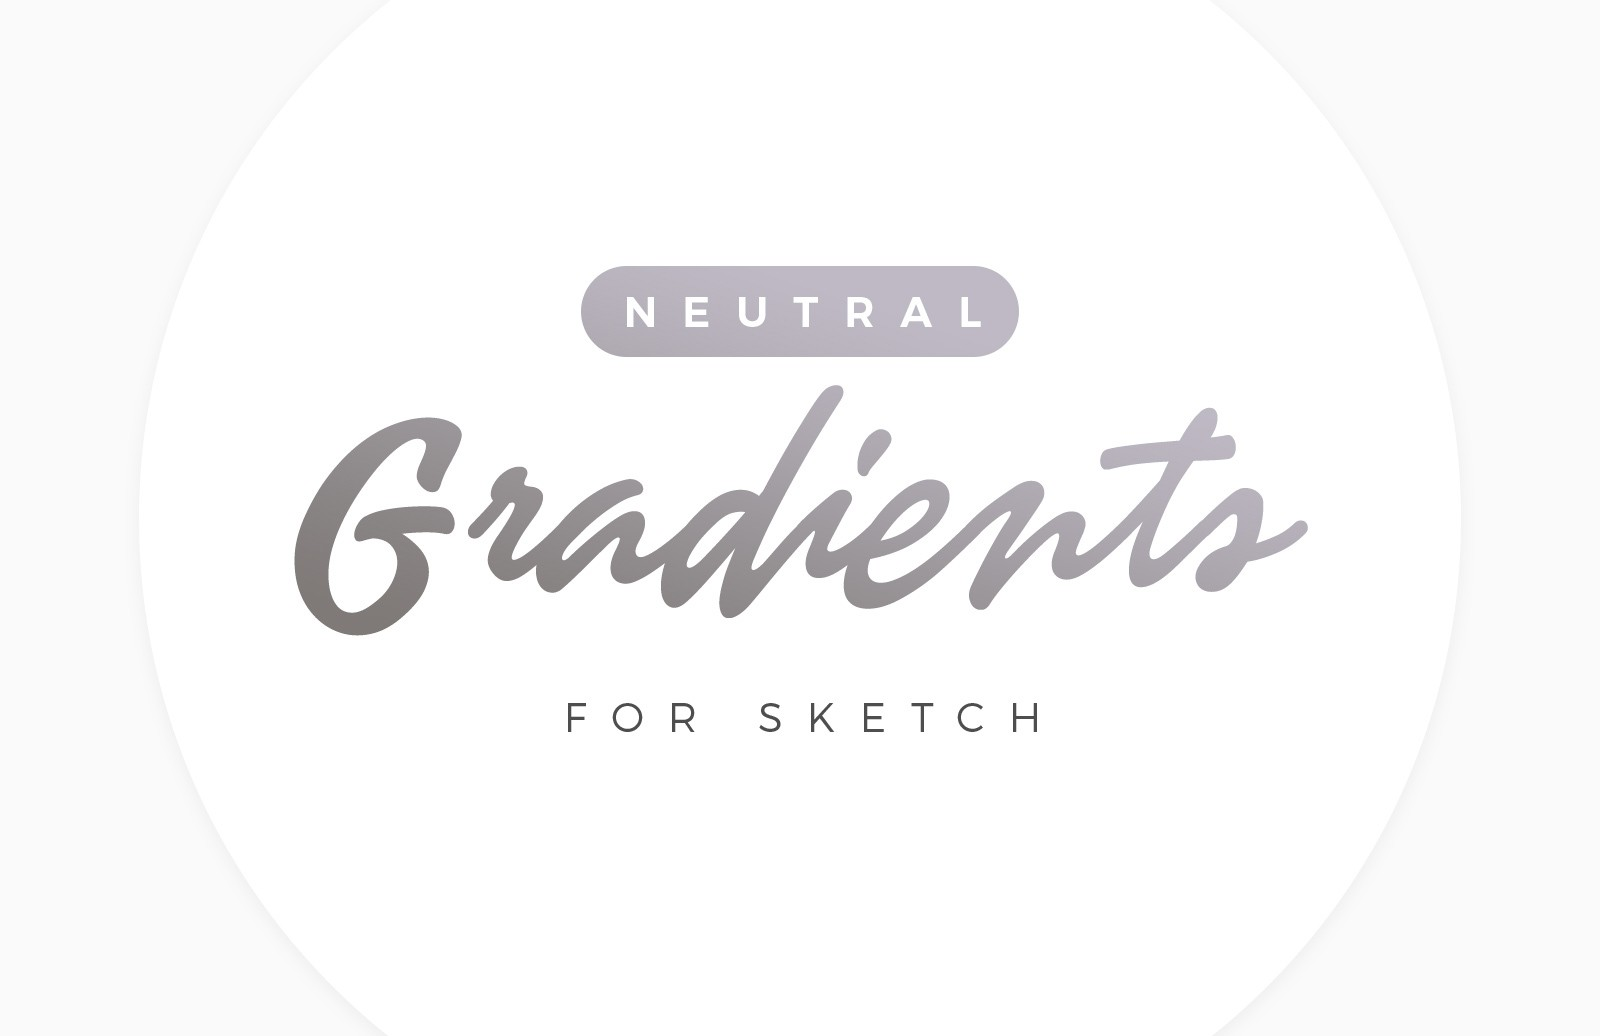 Neutral Gradients for Sketch